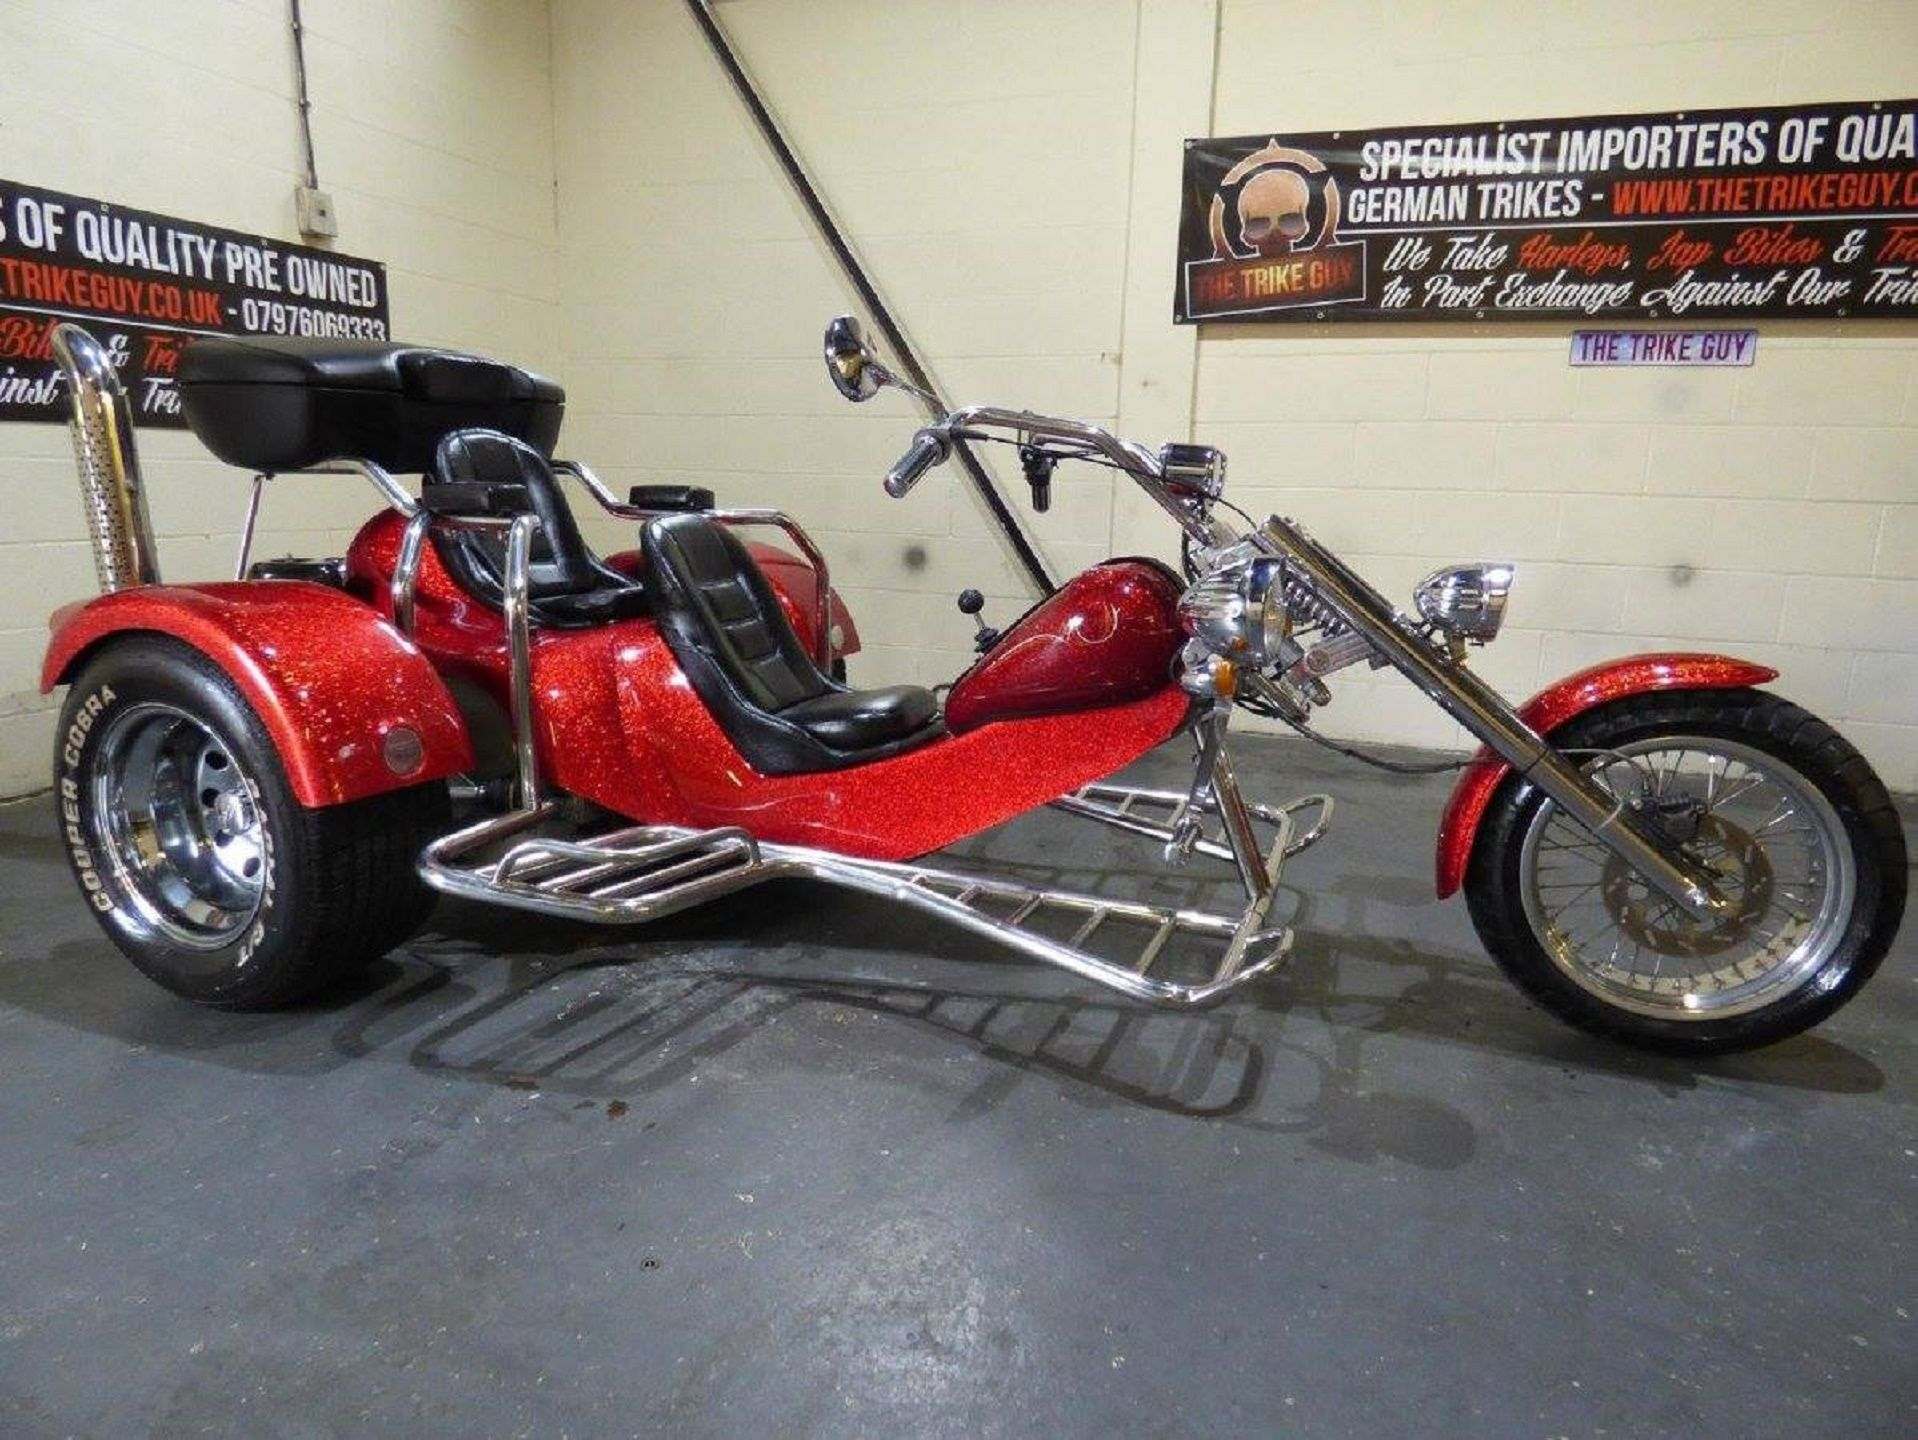 2006 Rewaco Hs4 Chopper 1600cc Limited Edition Trike Recently On Ebay Classified Ad Price 11 995 Contact Seller 033090 Trike Motorcycle Vw Trike Trike